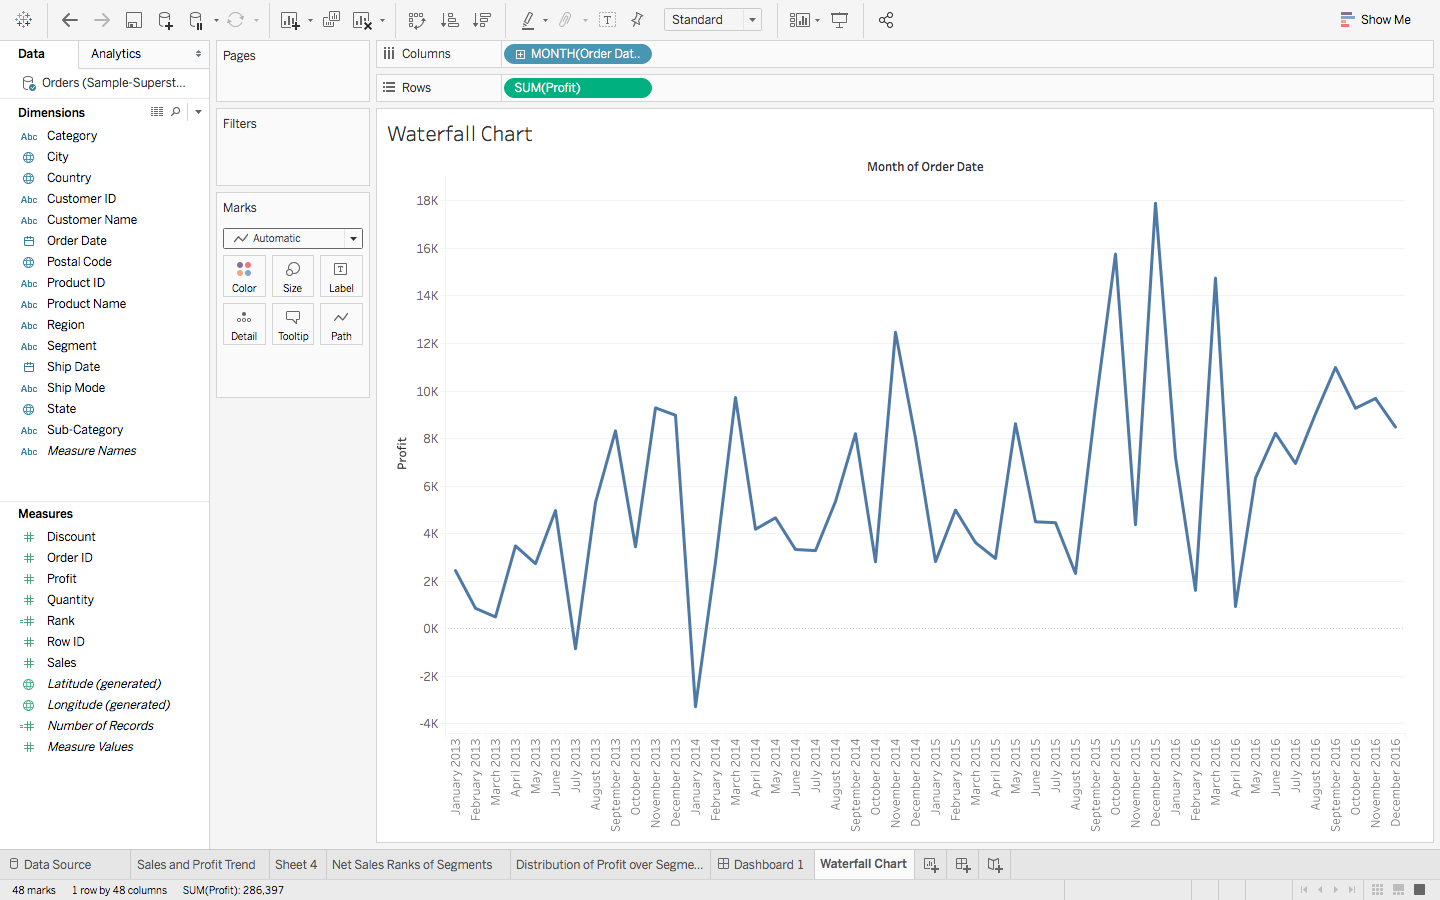 A Step By Step Guide To Learn Advanced Tableau For Data Science And Business Intelligence Professionals Analytics Vidh Data Science Data Visualization Data